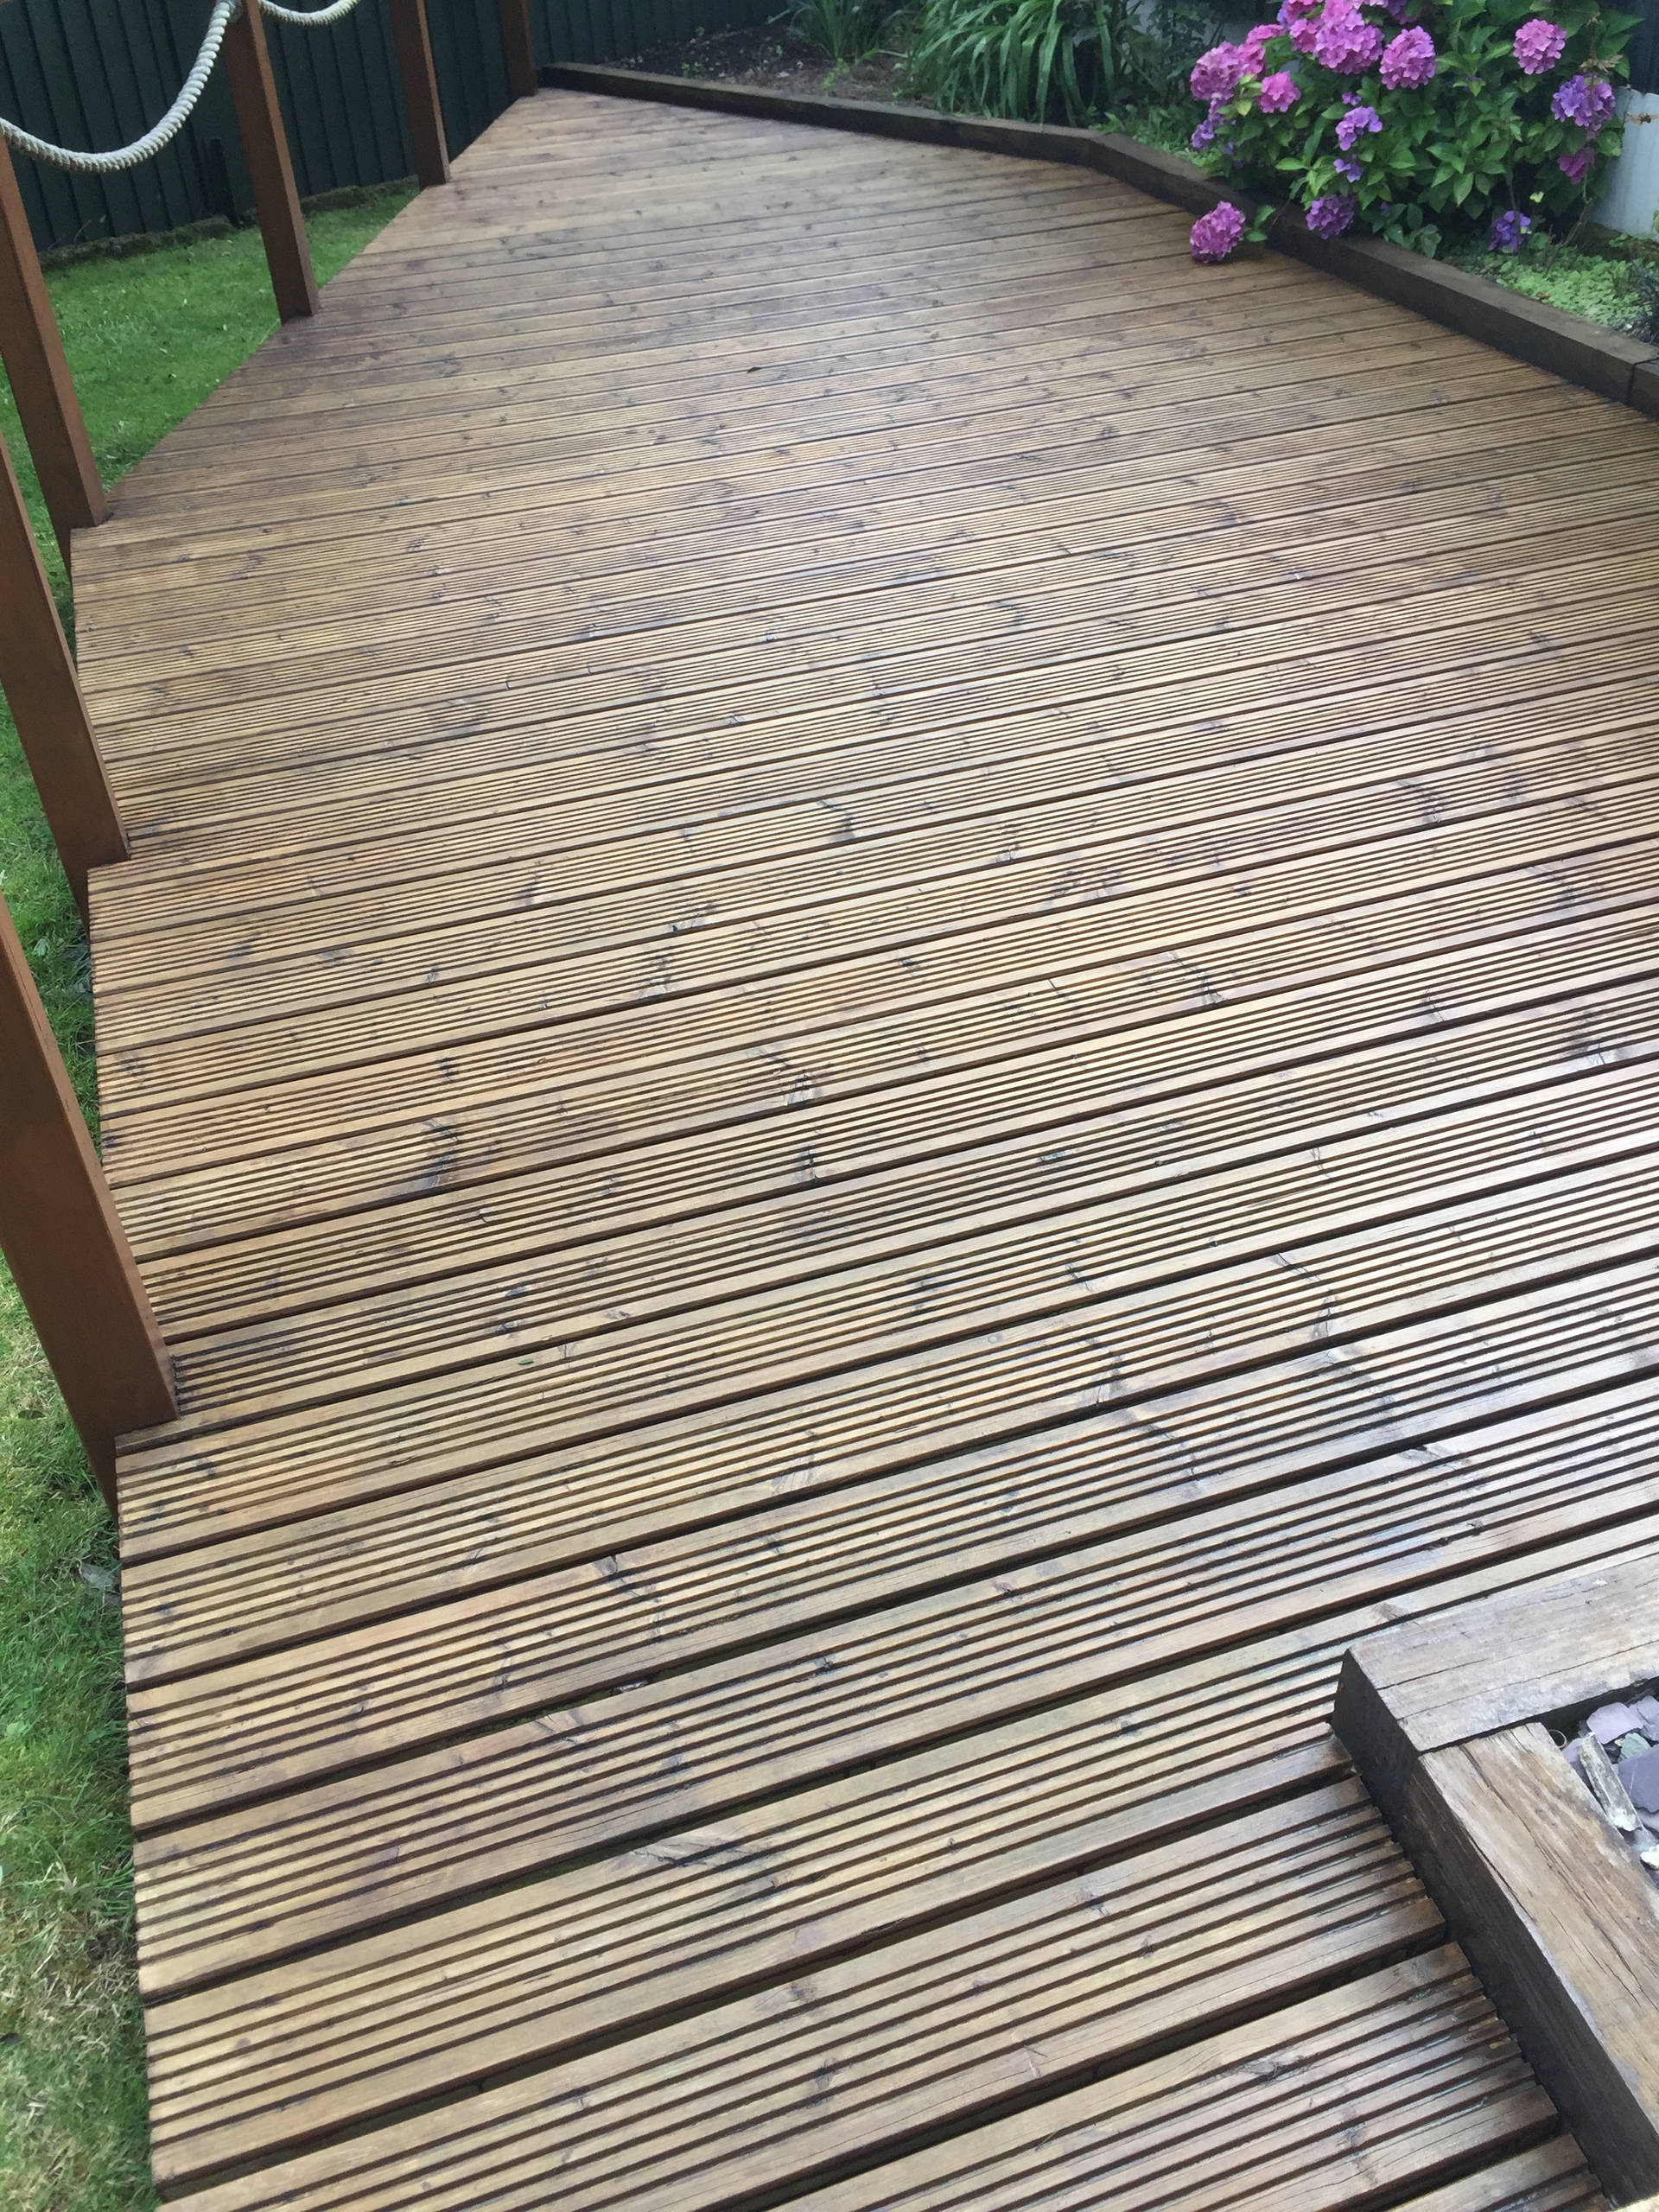 Decking After Cleaning